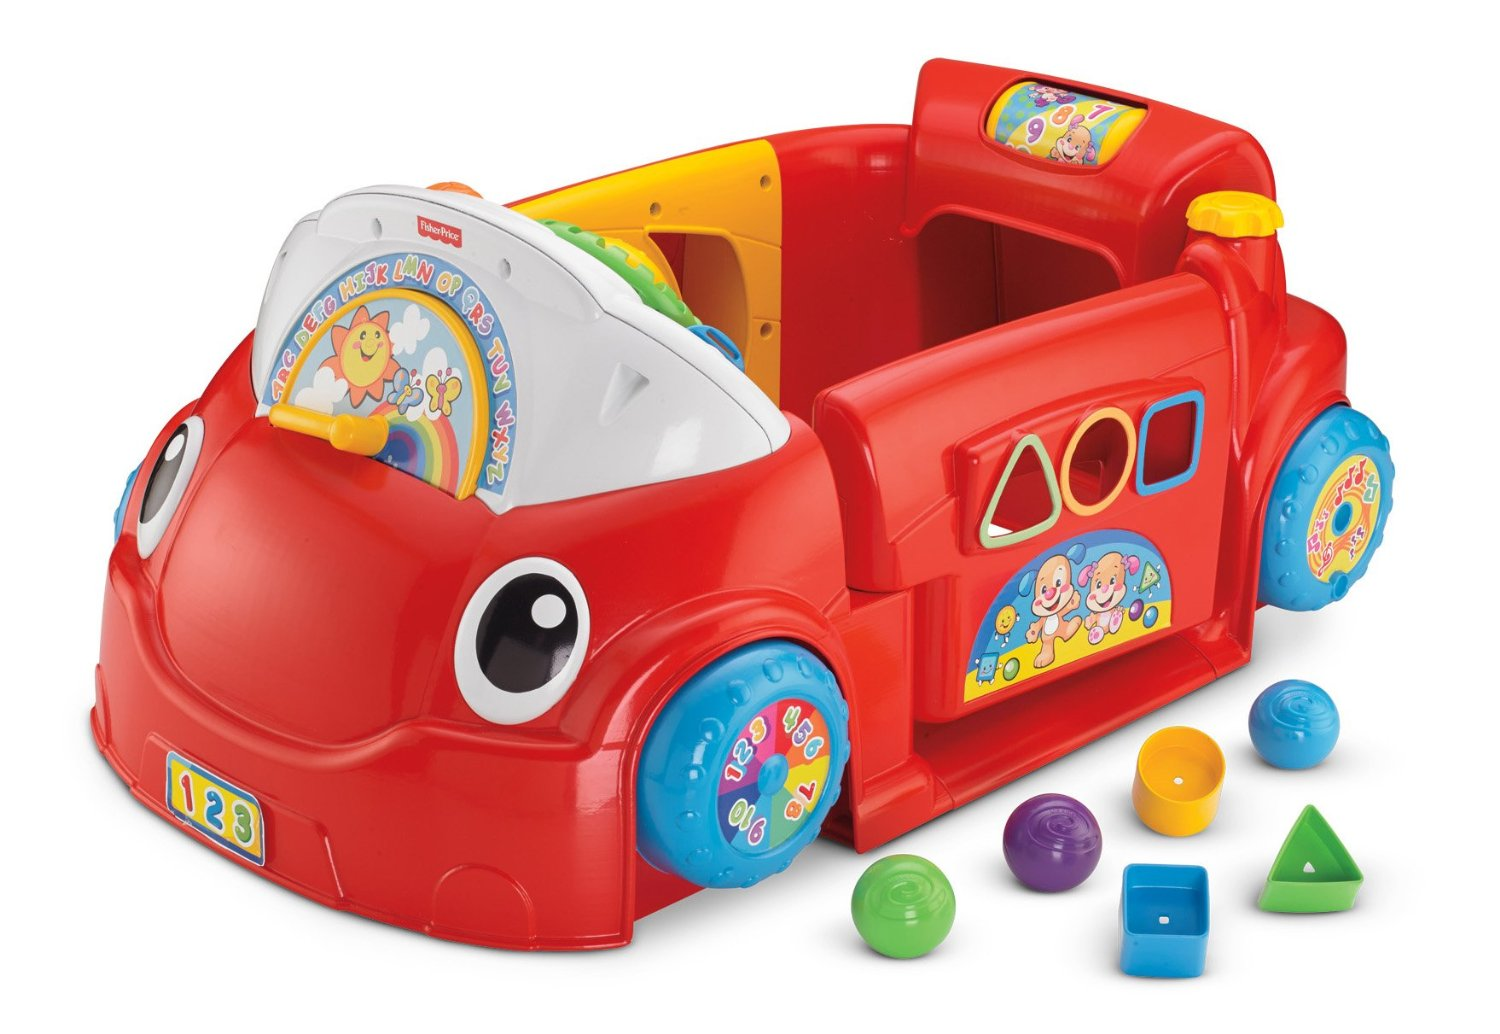 Fisher Price Laugh Learn Smart Stages Crawl Around Car Only 3999 Phone Reg 5988